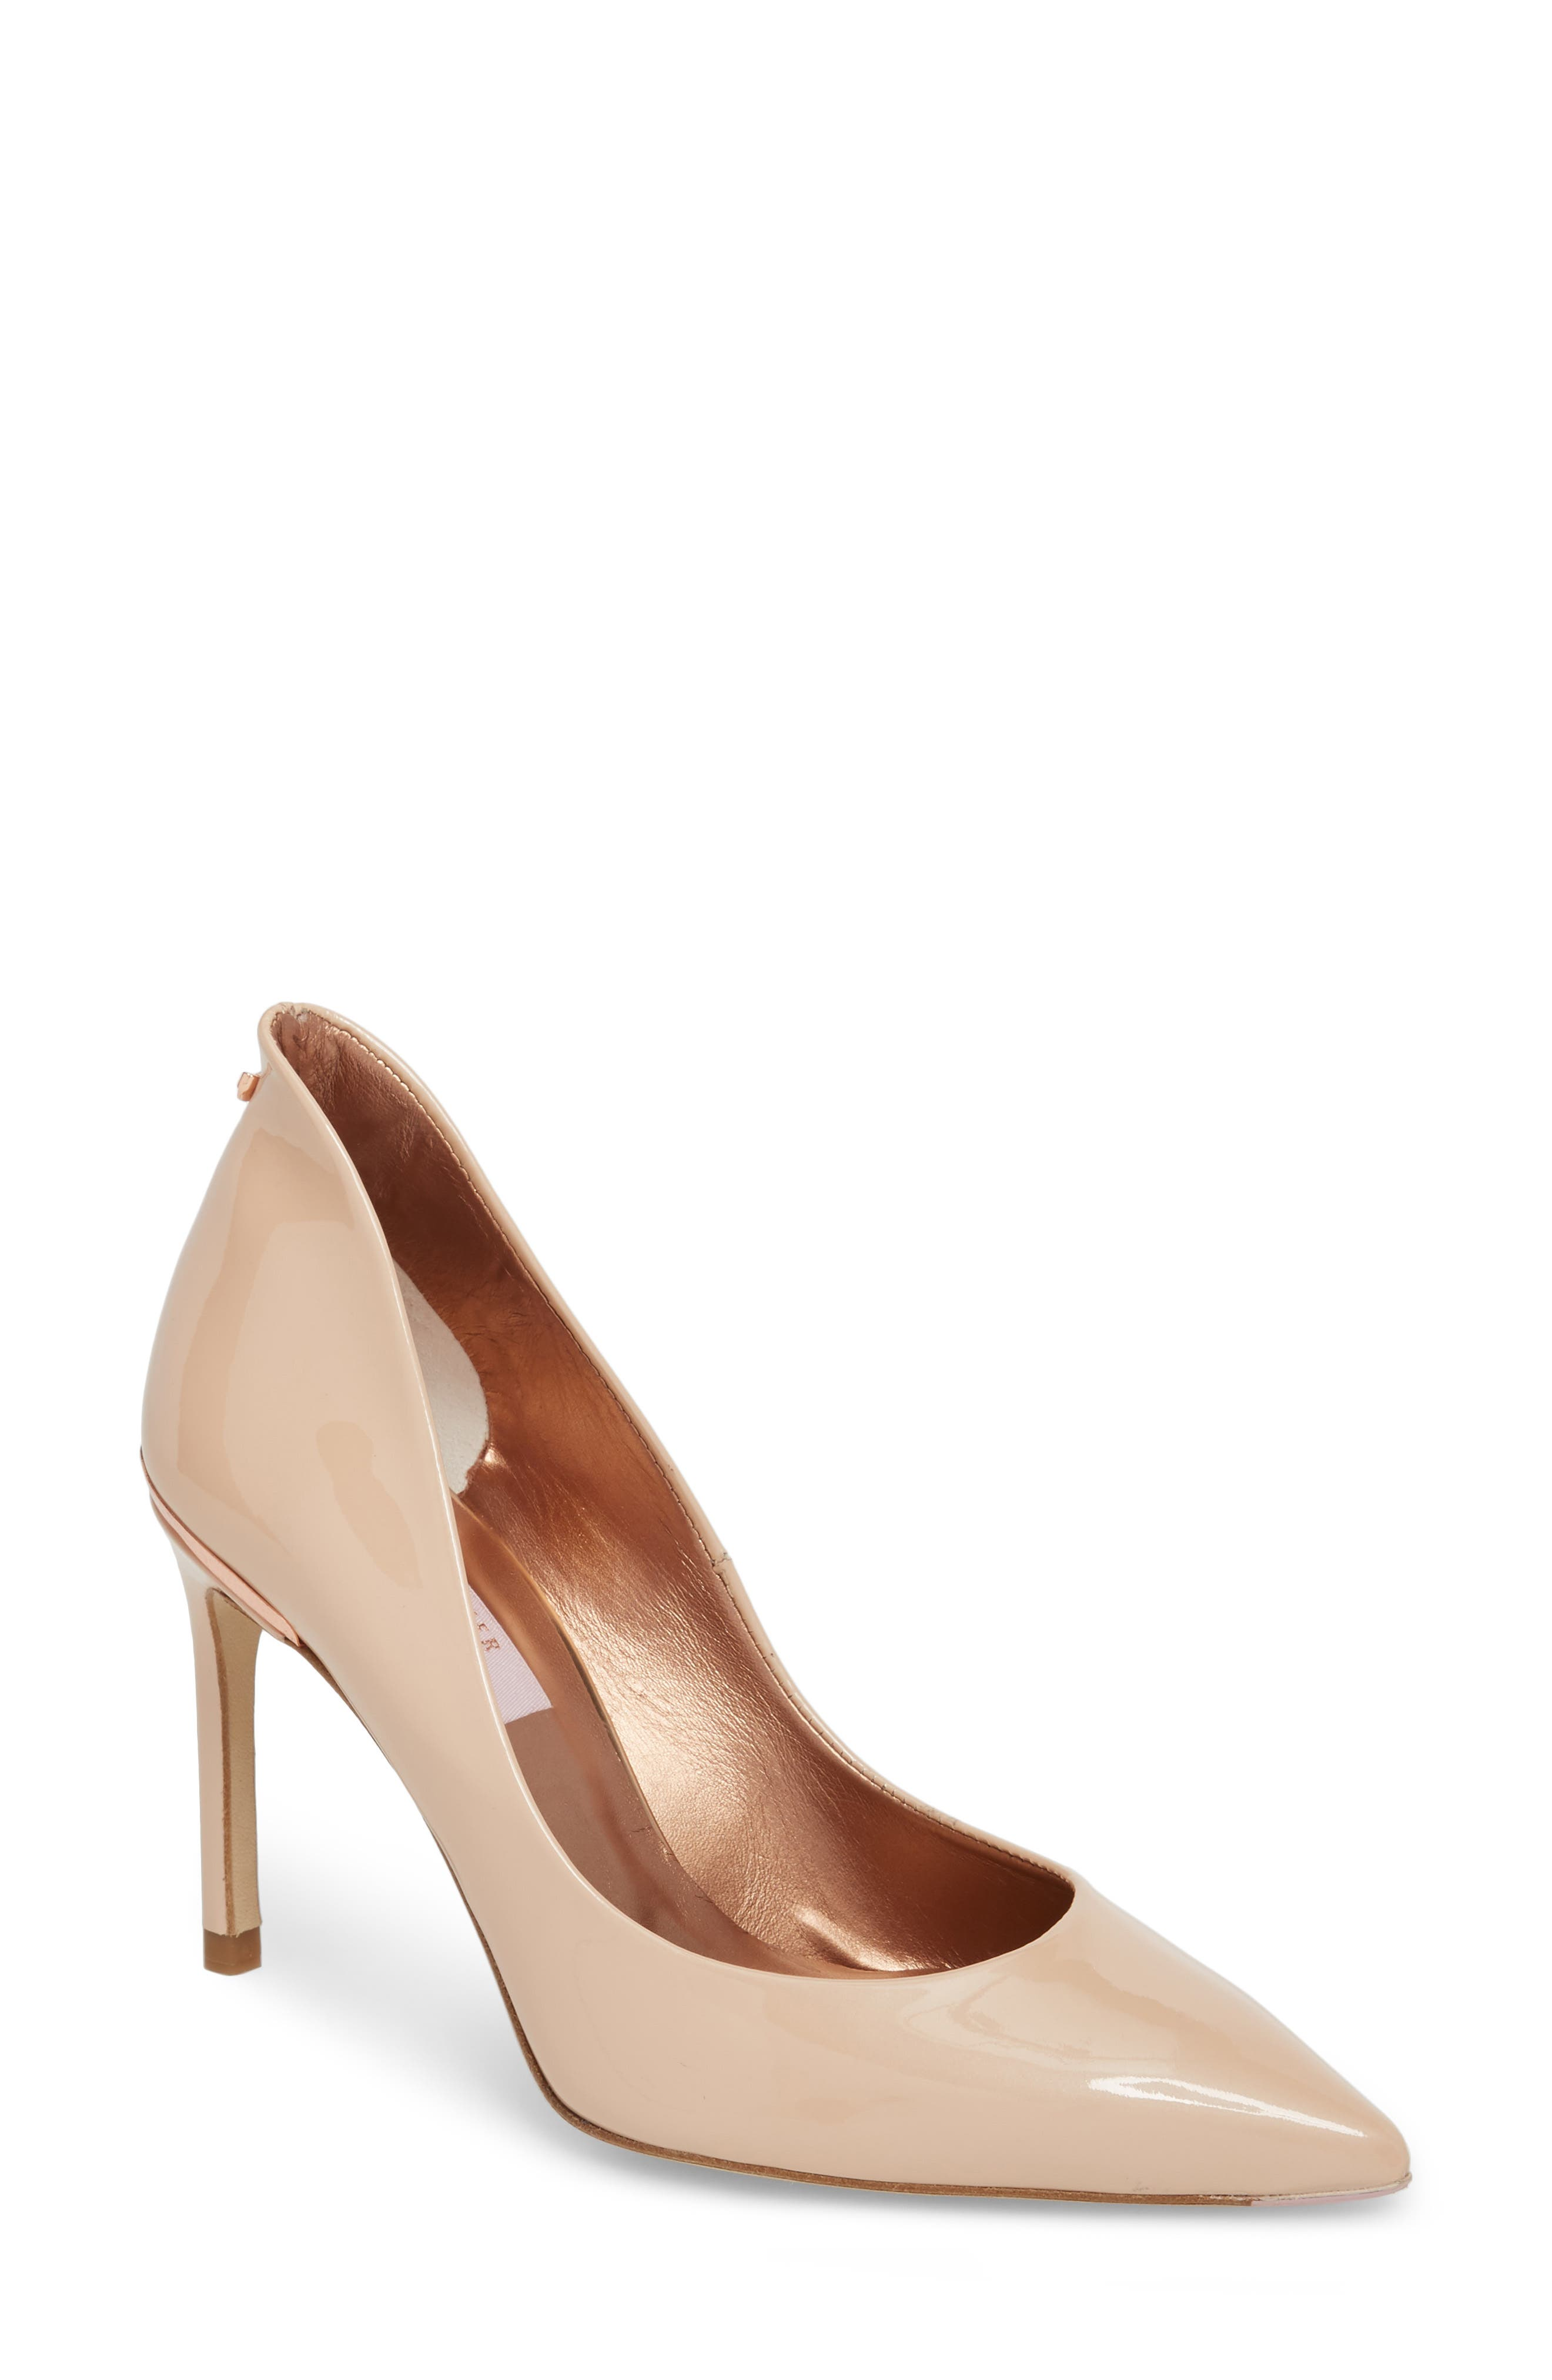 Savio Pump,                         Main,                         color, NUDE PATENT LEATHER